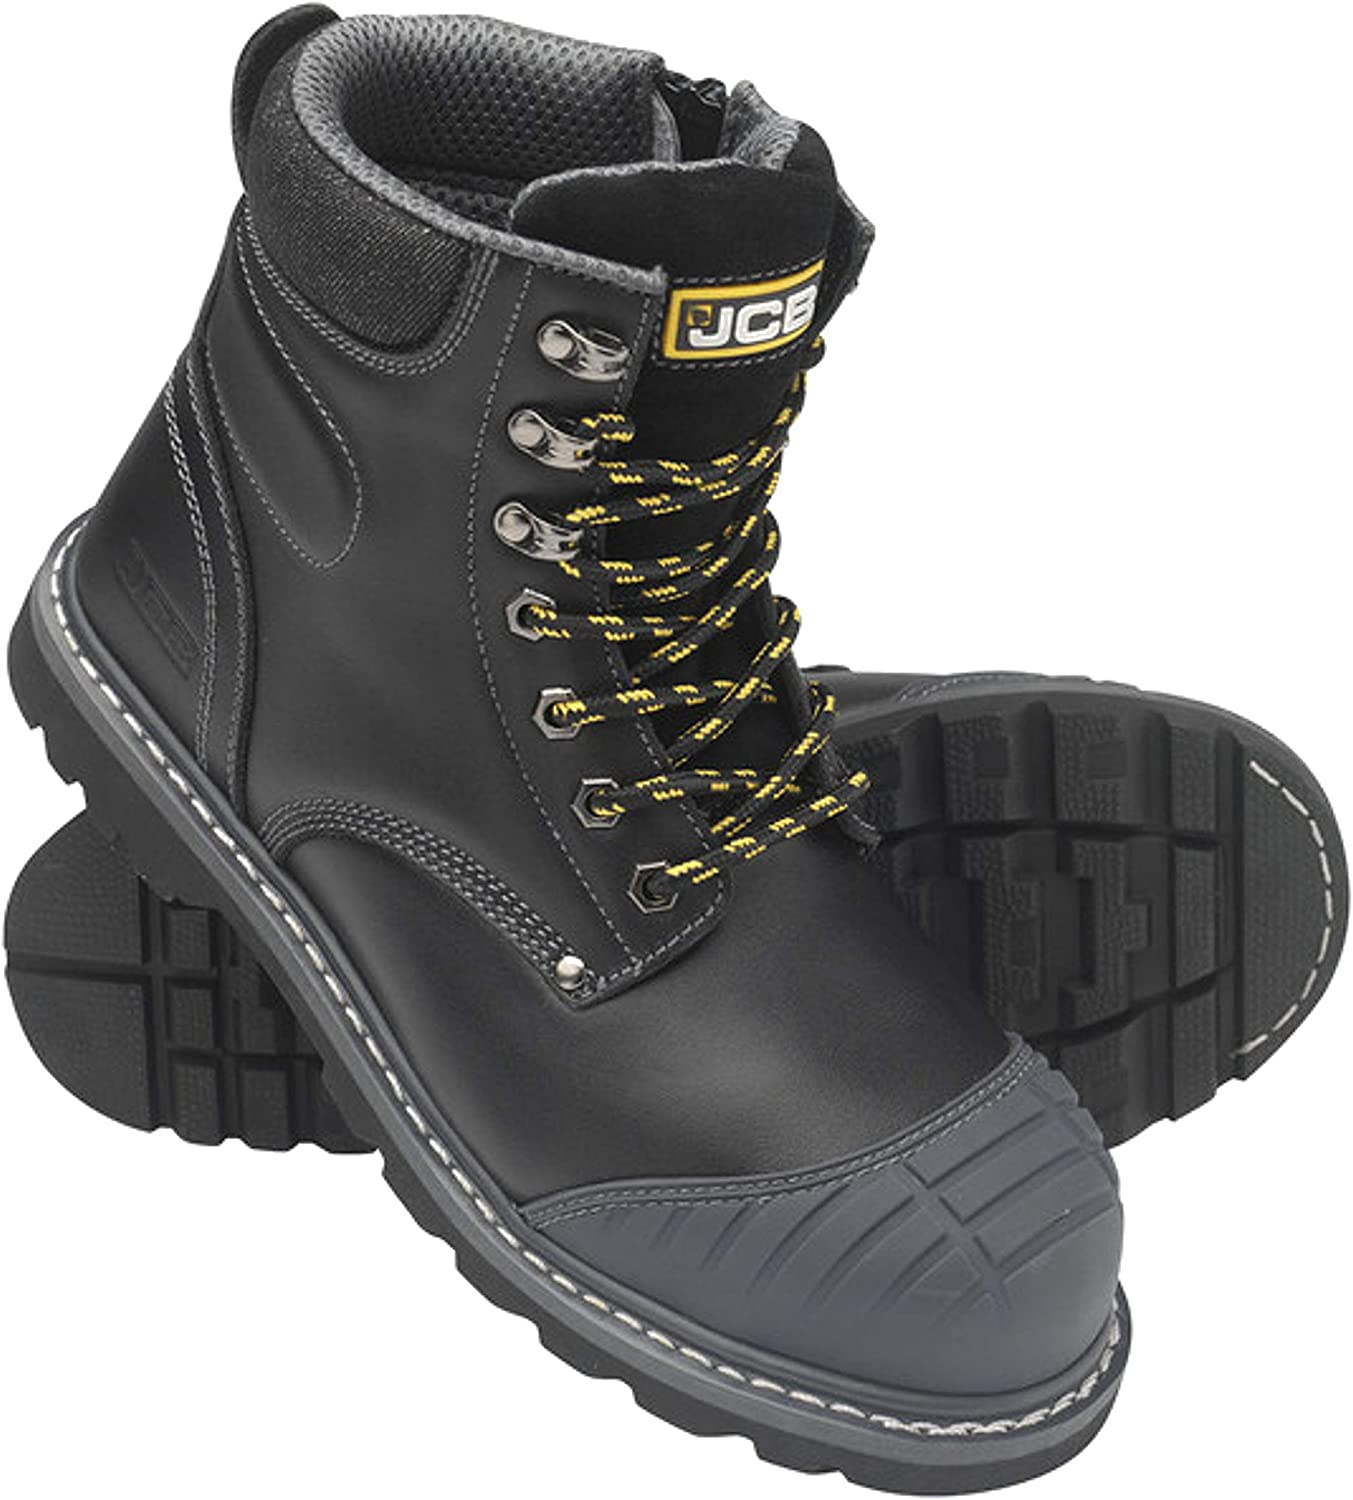 JCB 5CX+ Side Zip S1P SRC Leather Steel Toe Cap Work Safety Boots